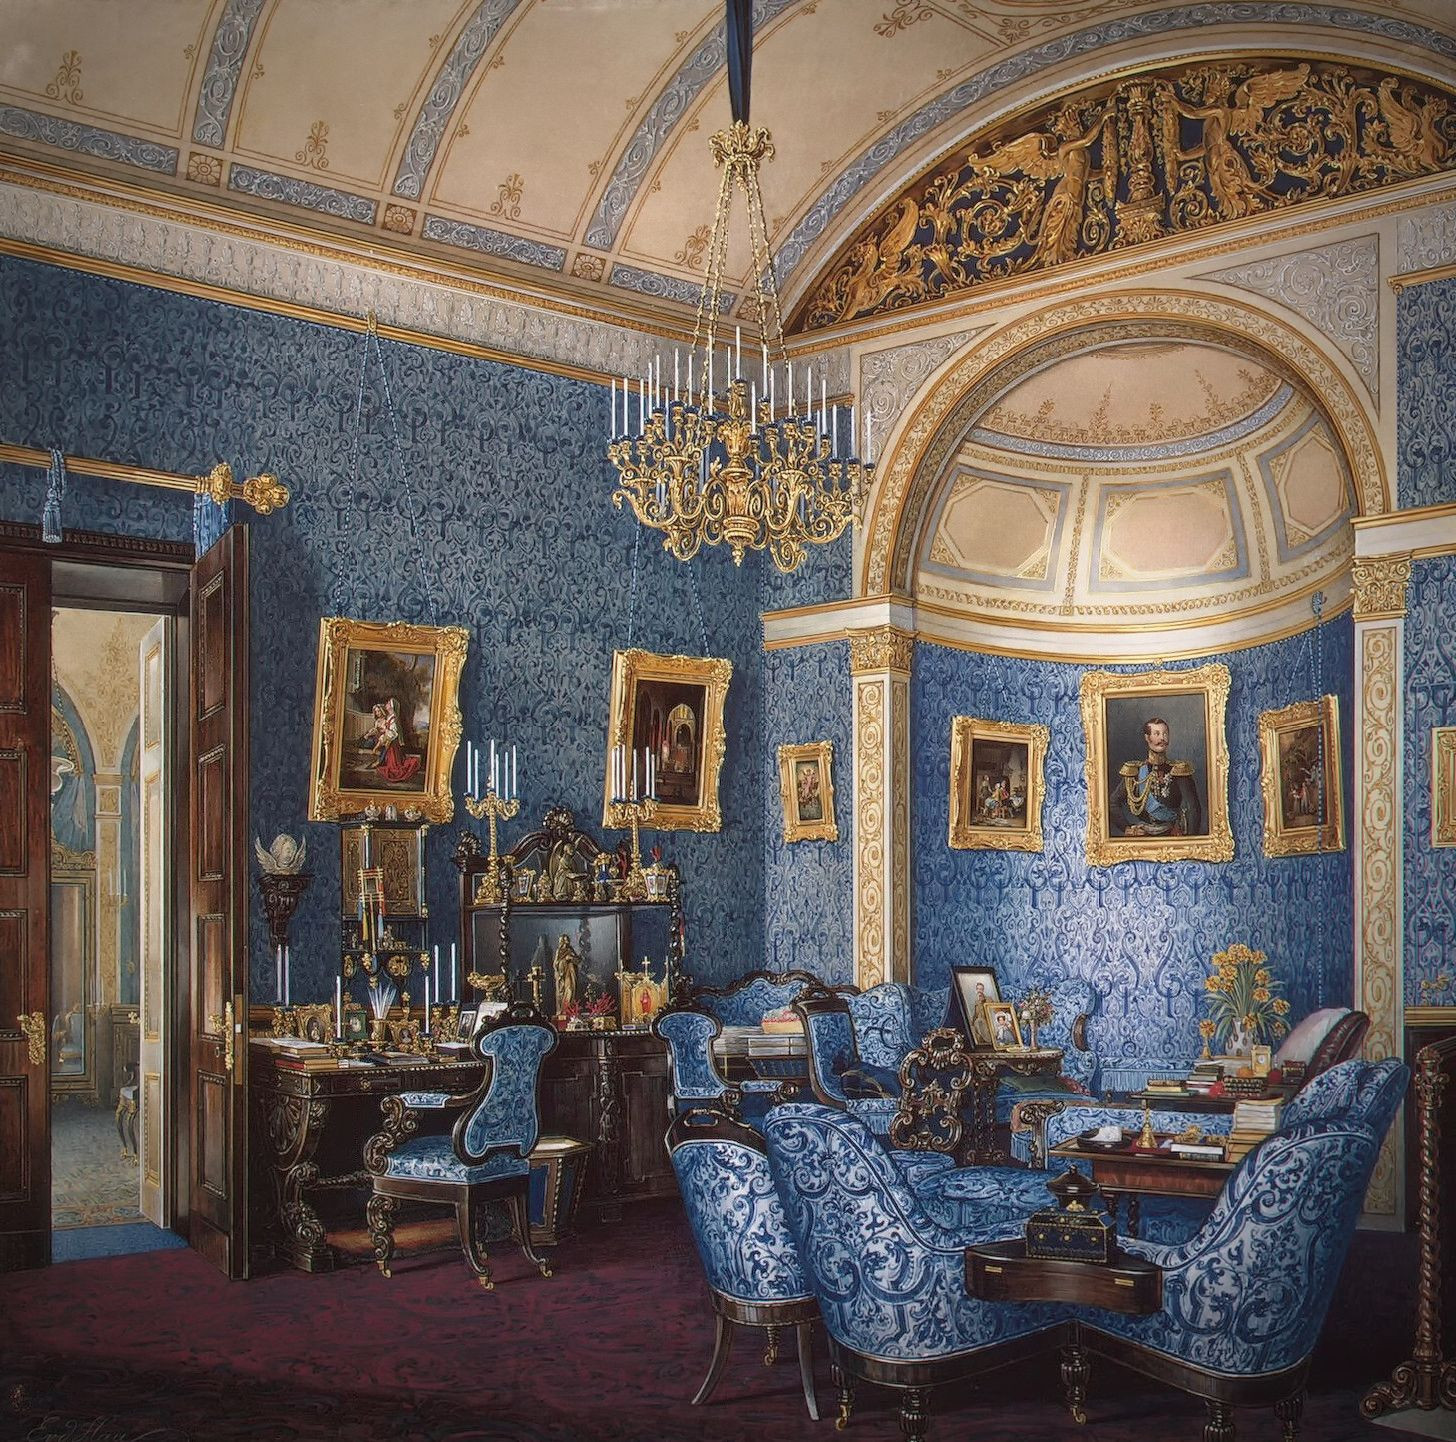 Inside the Winter Palace of Imperial Russia